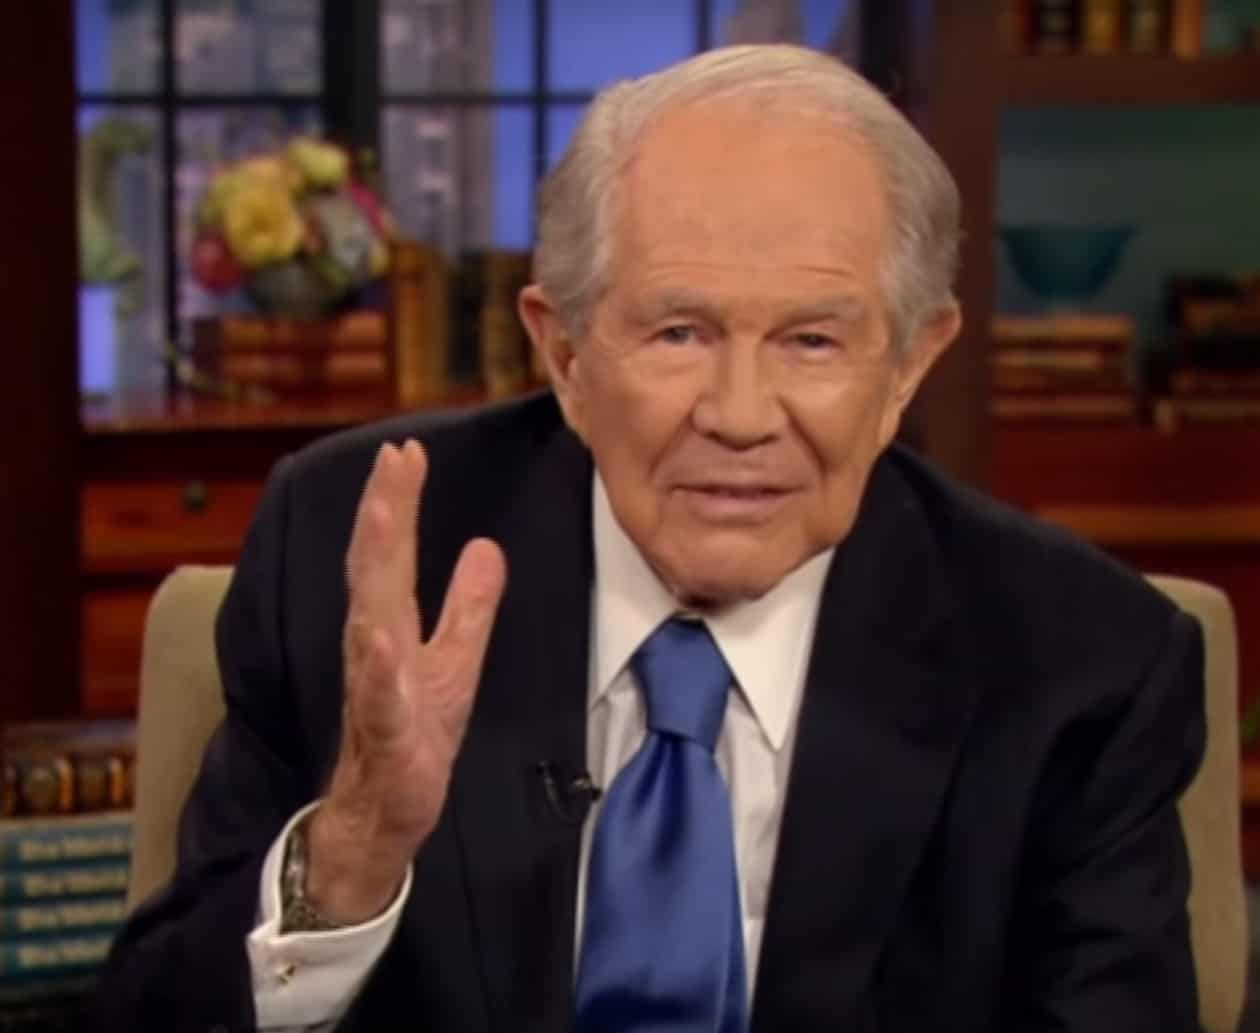 Pat robertson homosexuality in christianity